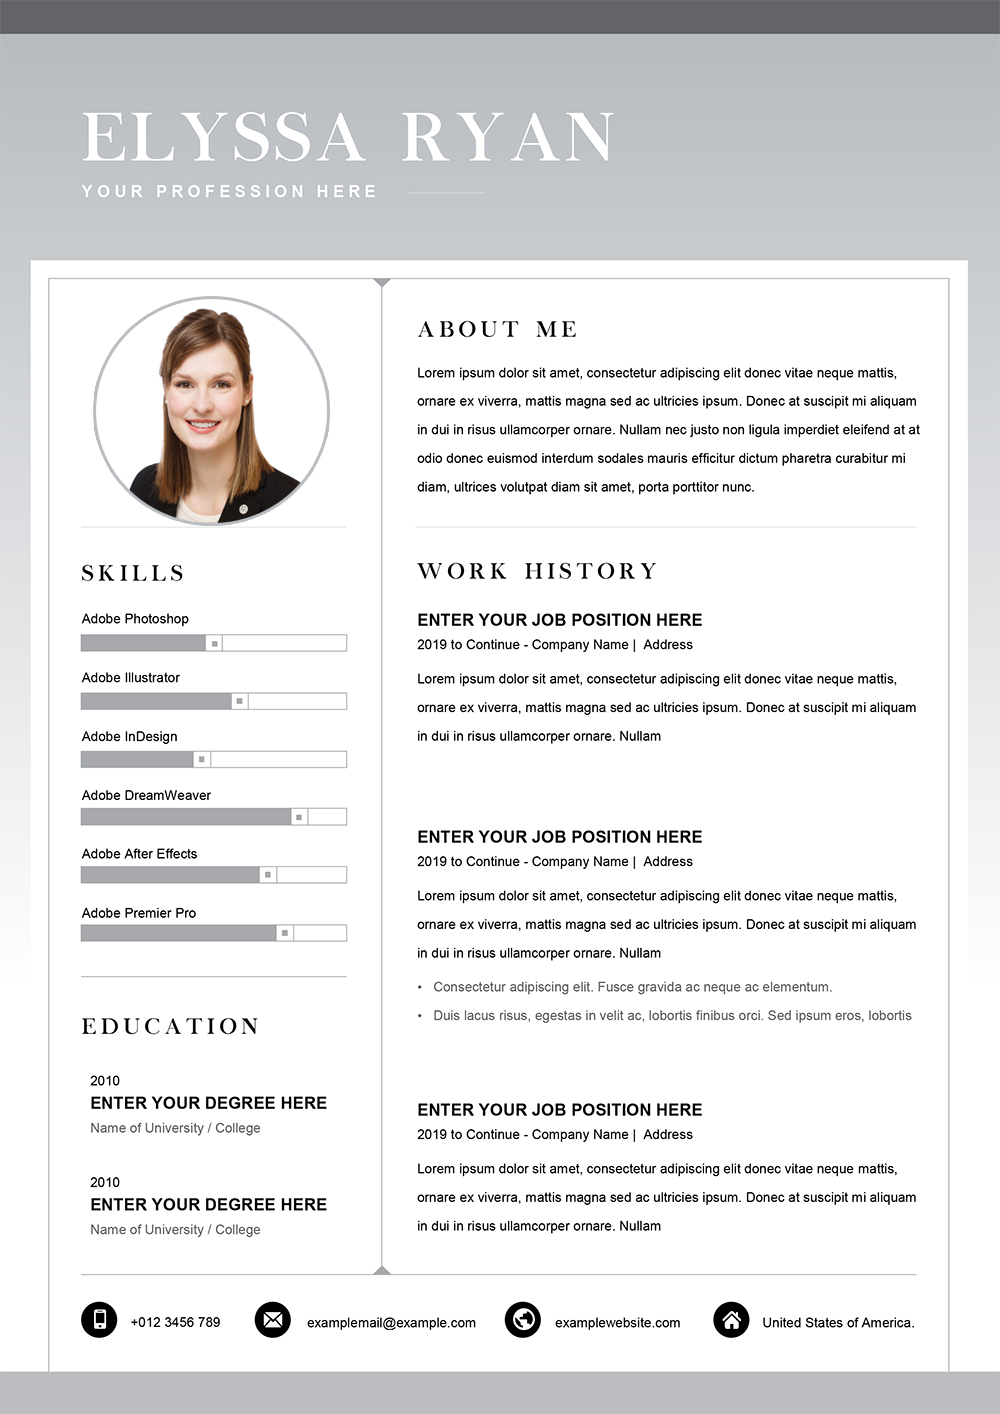 job application resume template in word format for photoshop review writing group jimmy Resume Resume For Photoshop Job